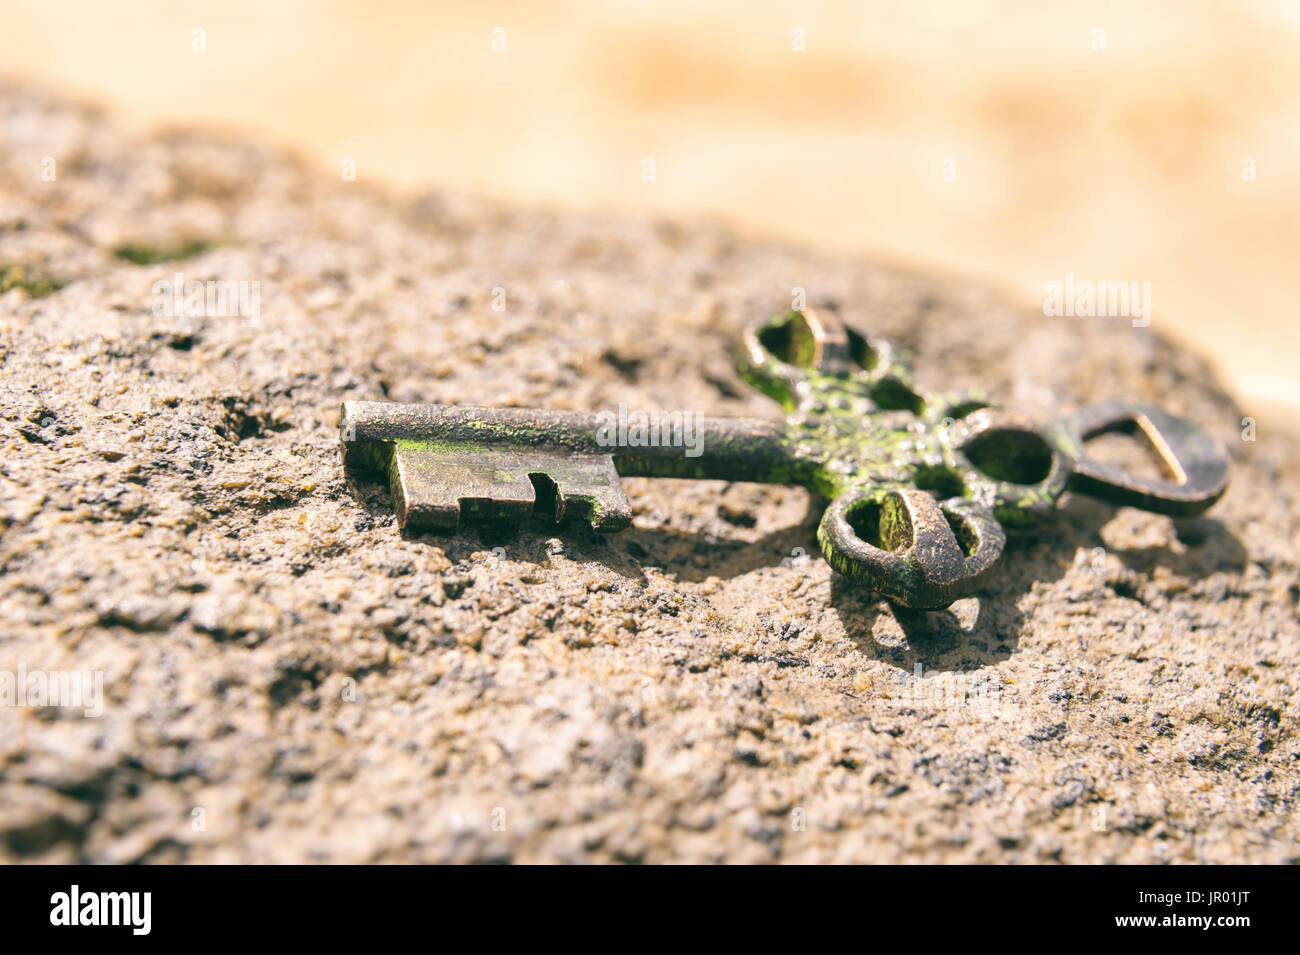 Treasure key lost on rock at the beach. Opportunity or Mystery concept. - Stock Image